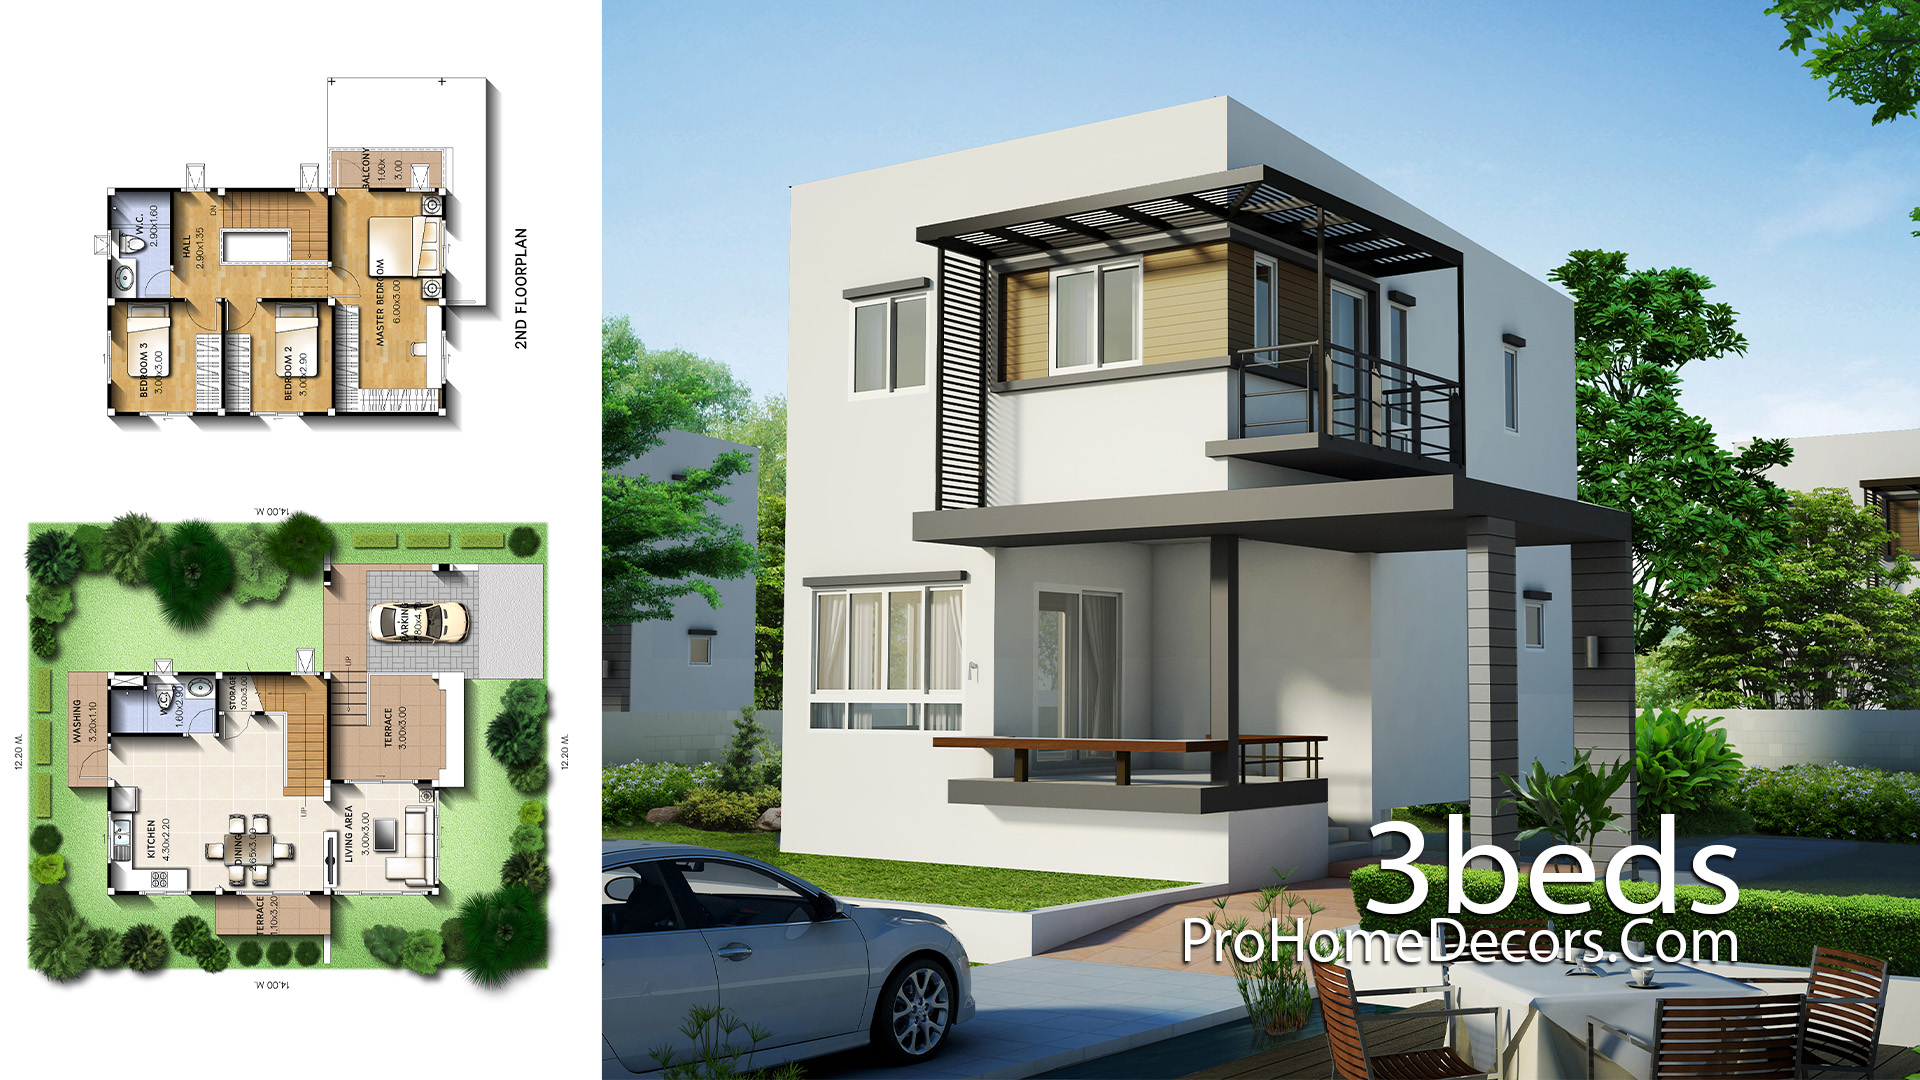 Small House Plot 12x14 Meter with 3 Bedrooms